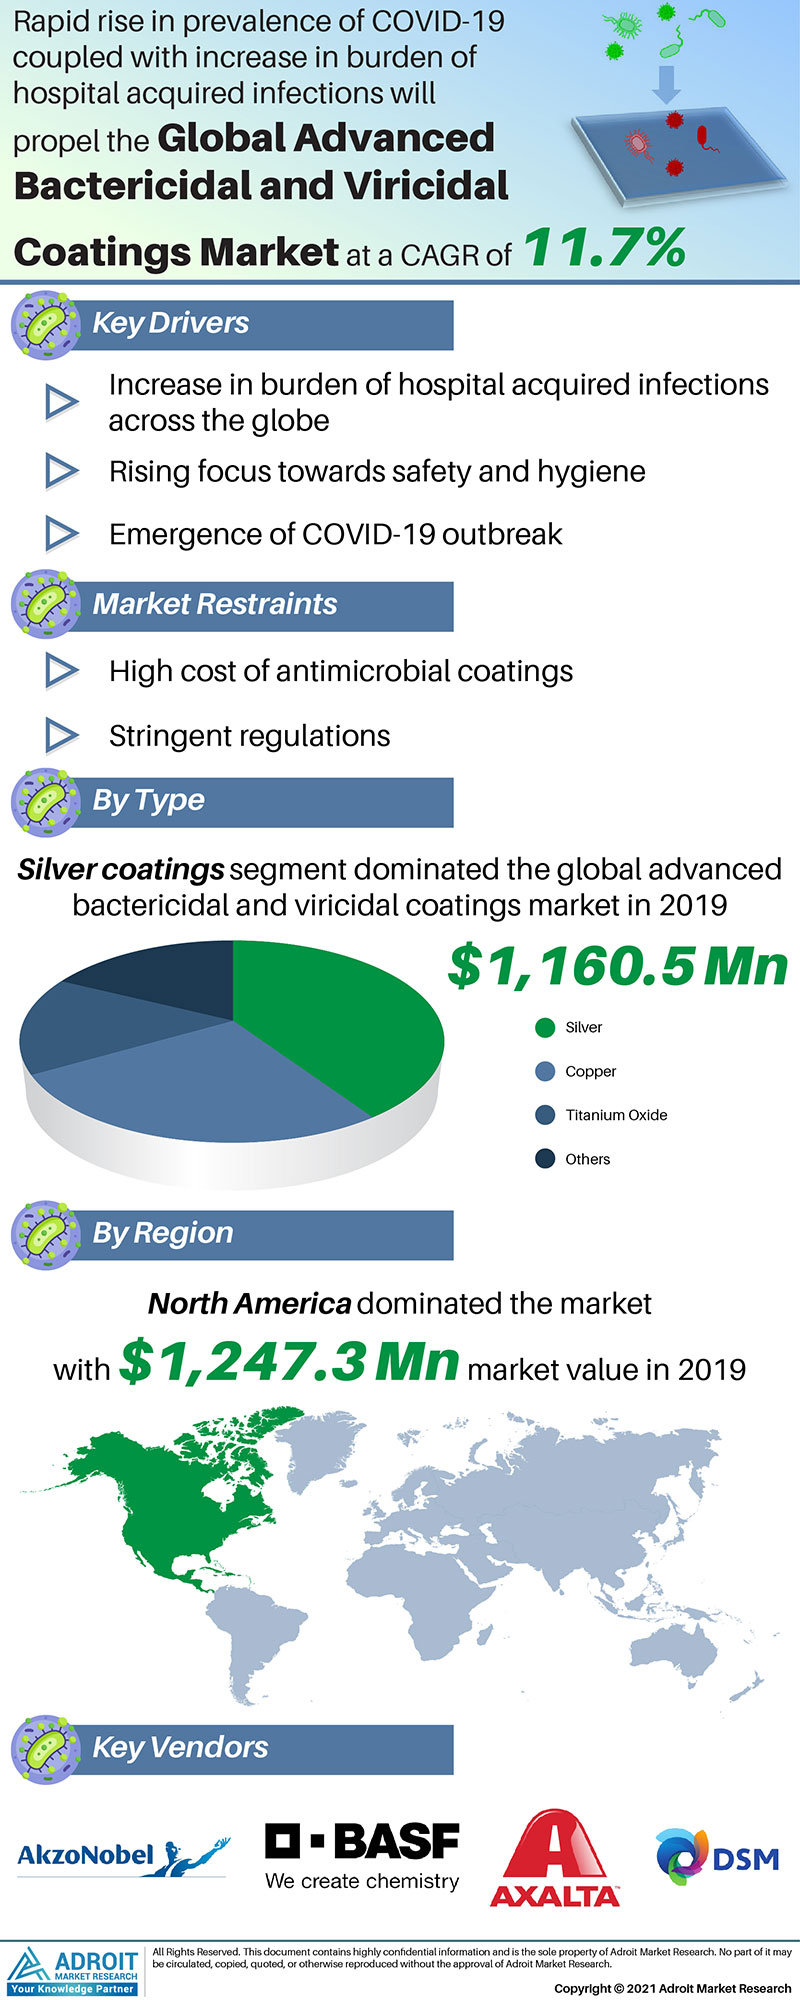 Advanced Bactericidal And Viricidal Coatings Market Size 2017 By Application, Product, Region and Forecast 2019 to 2025